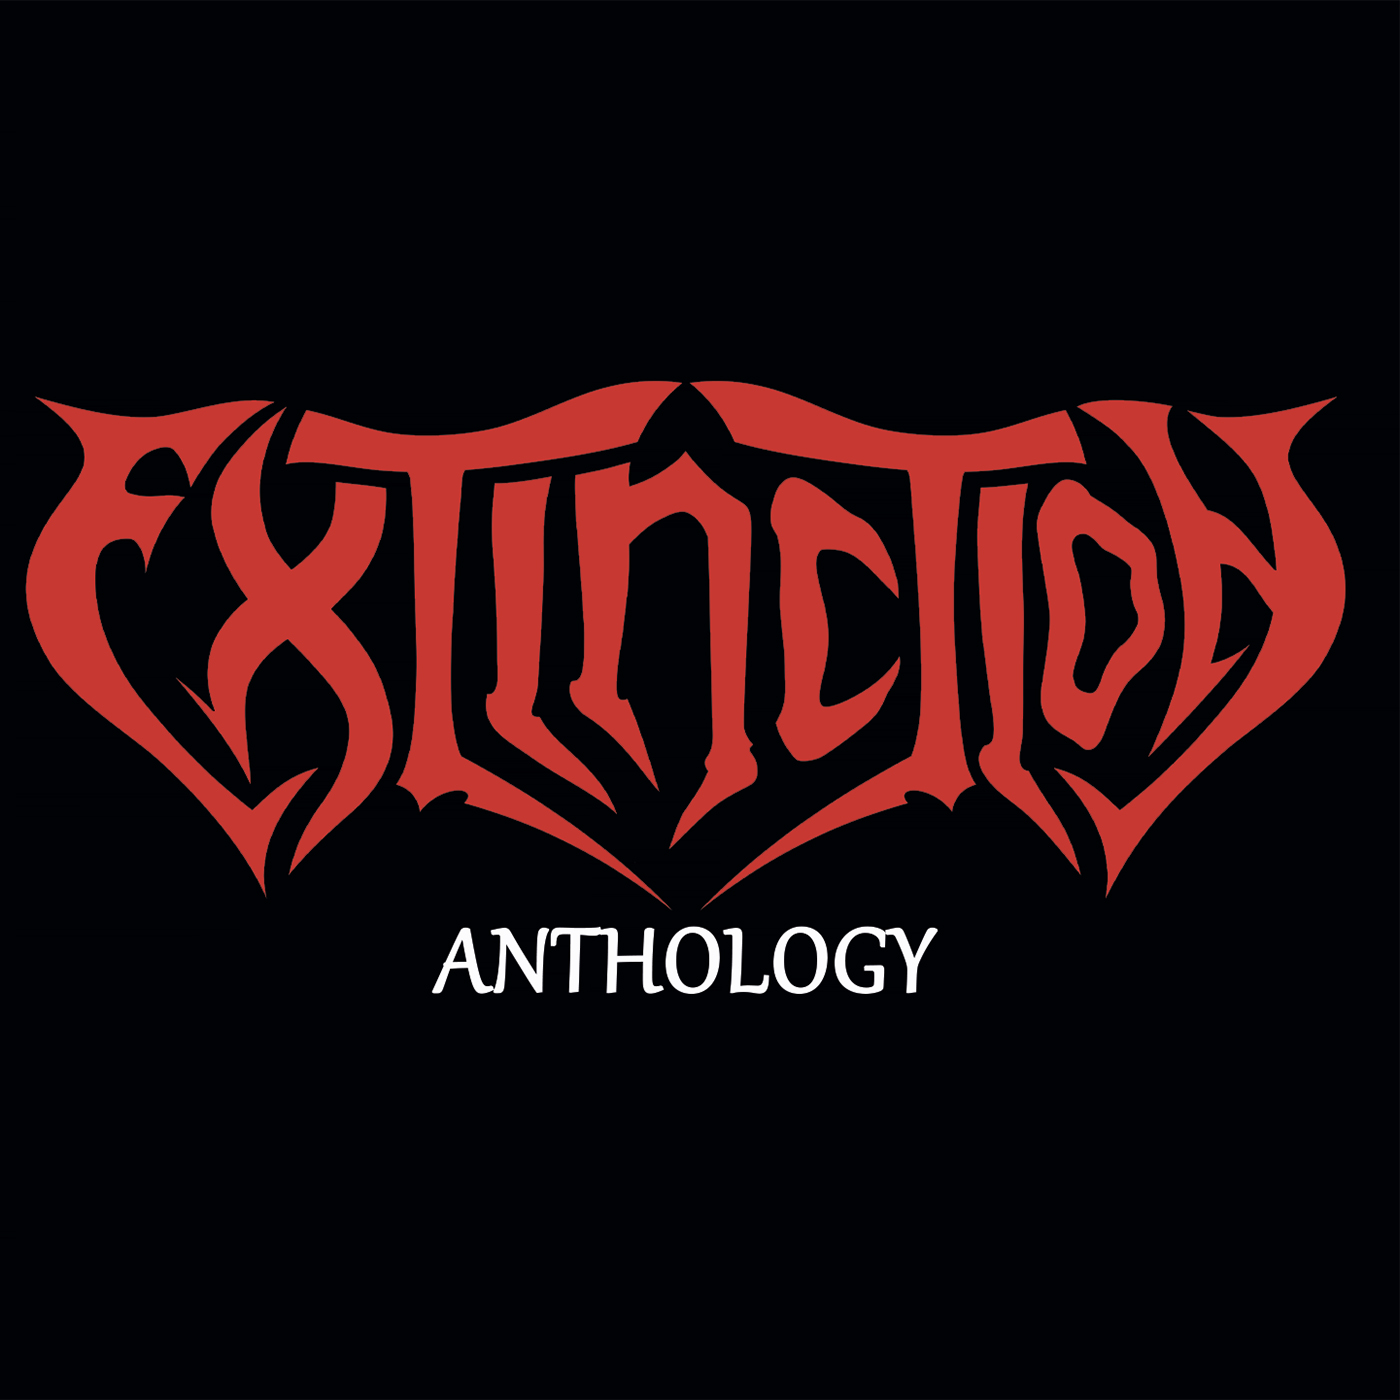 Extinction - Anthology (2 CD demo compilation) - Pre-Sale